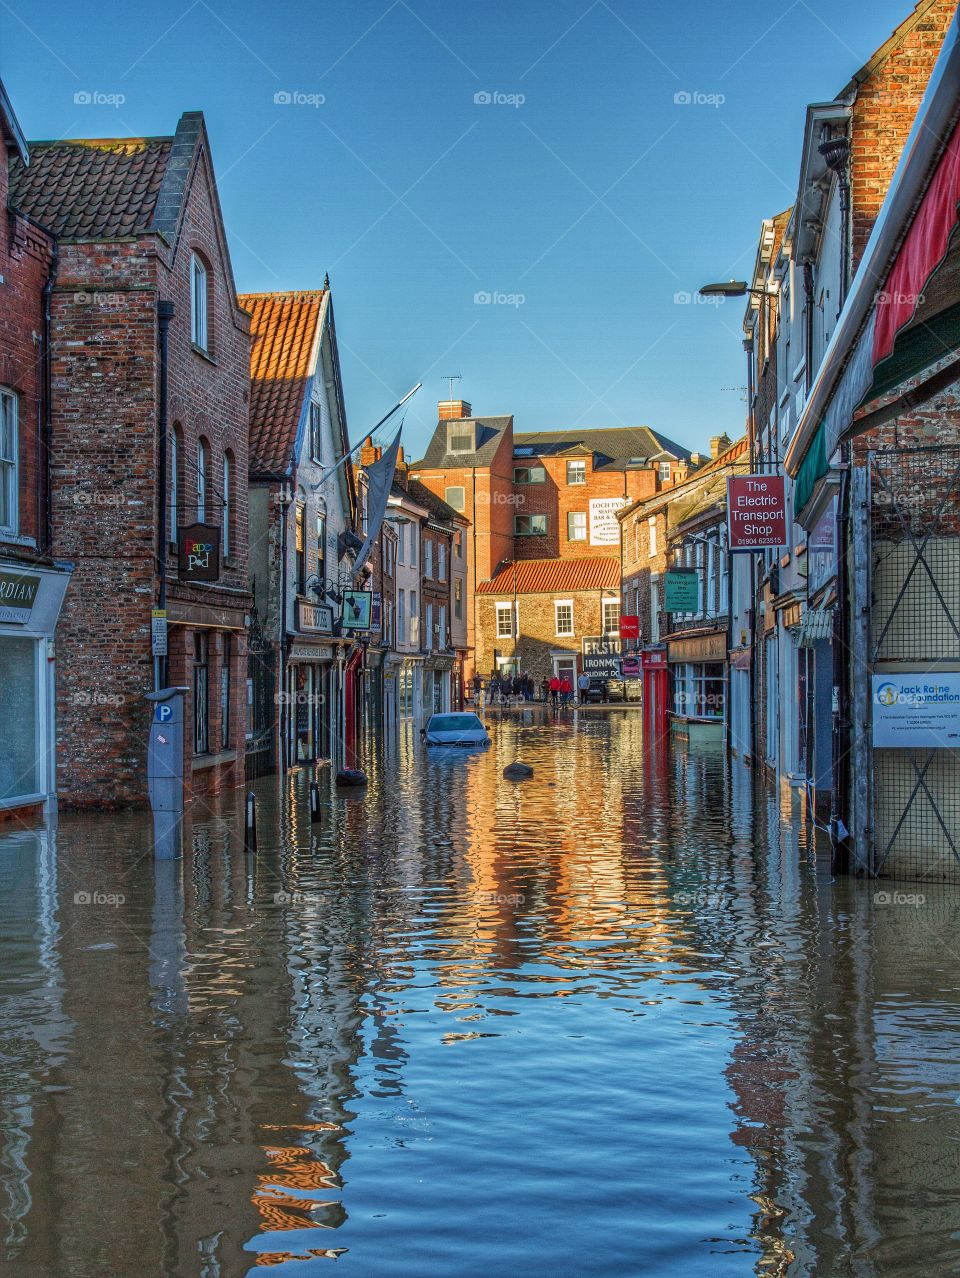 The flooded streets of York in England after heavy rainfall made The River Ouse burst its banks again.